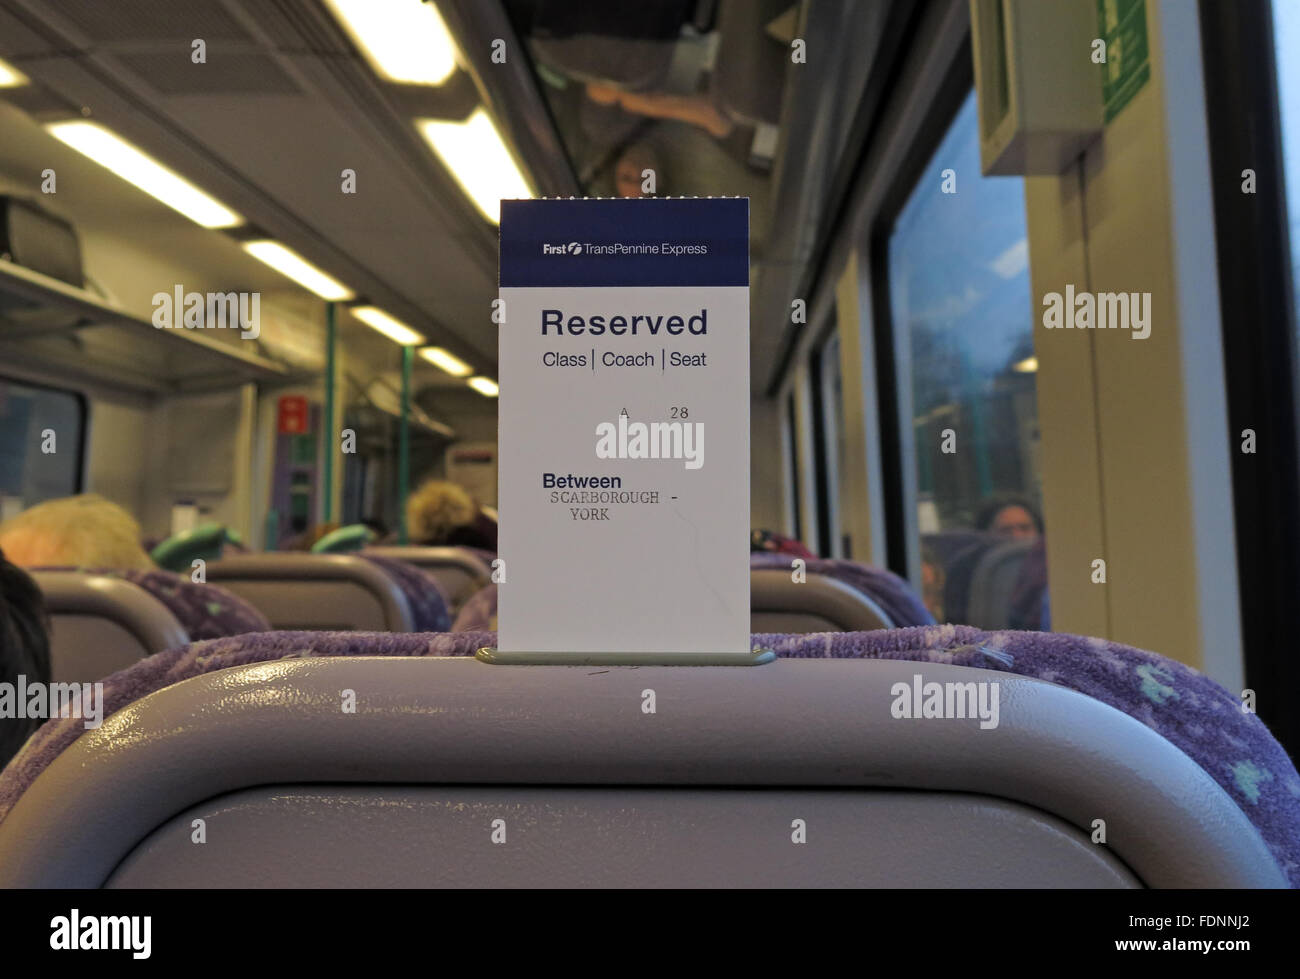 Seat reservation on a British Rail Seat,England,UK - Stock Image